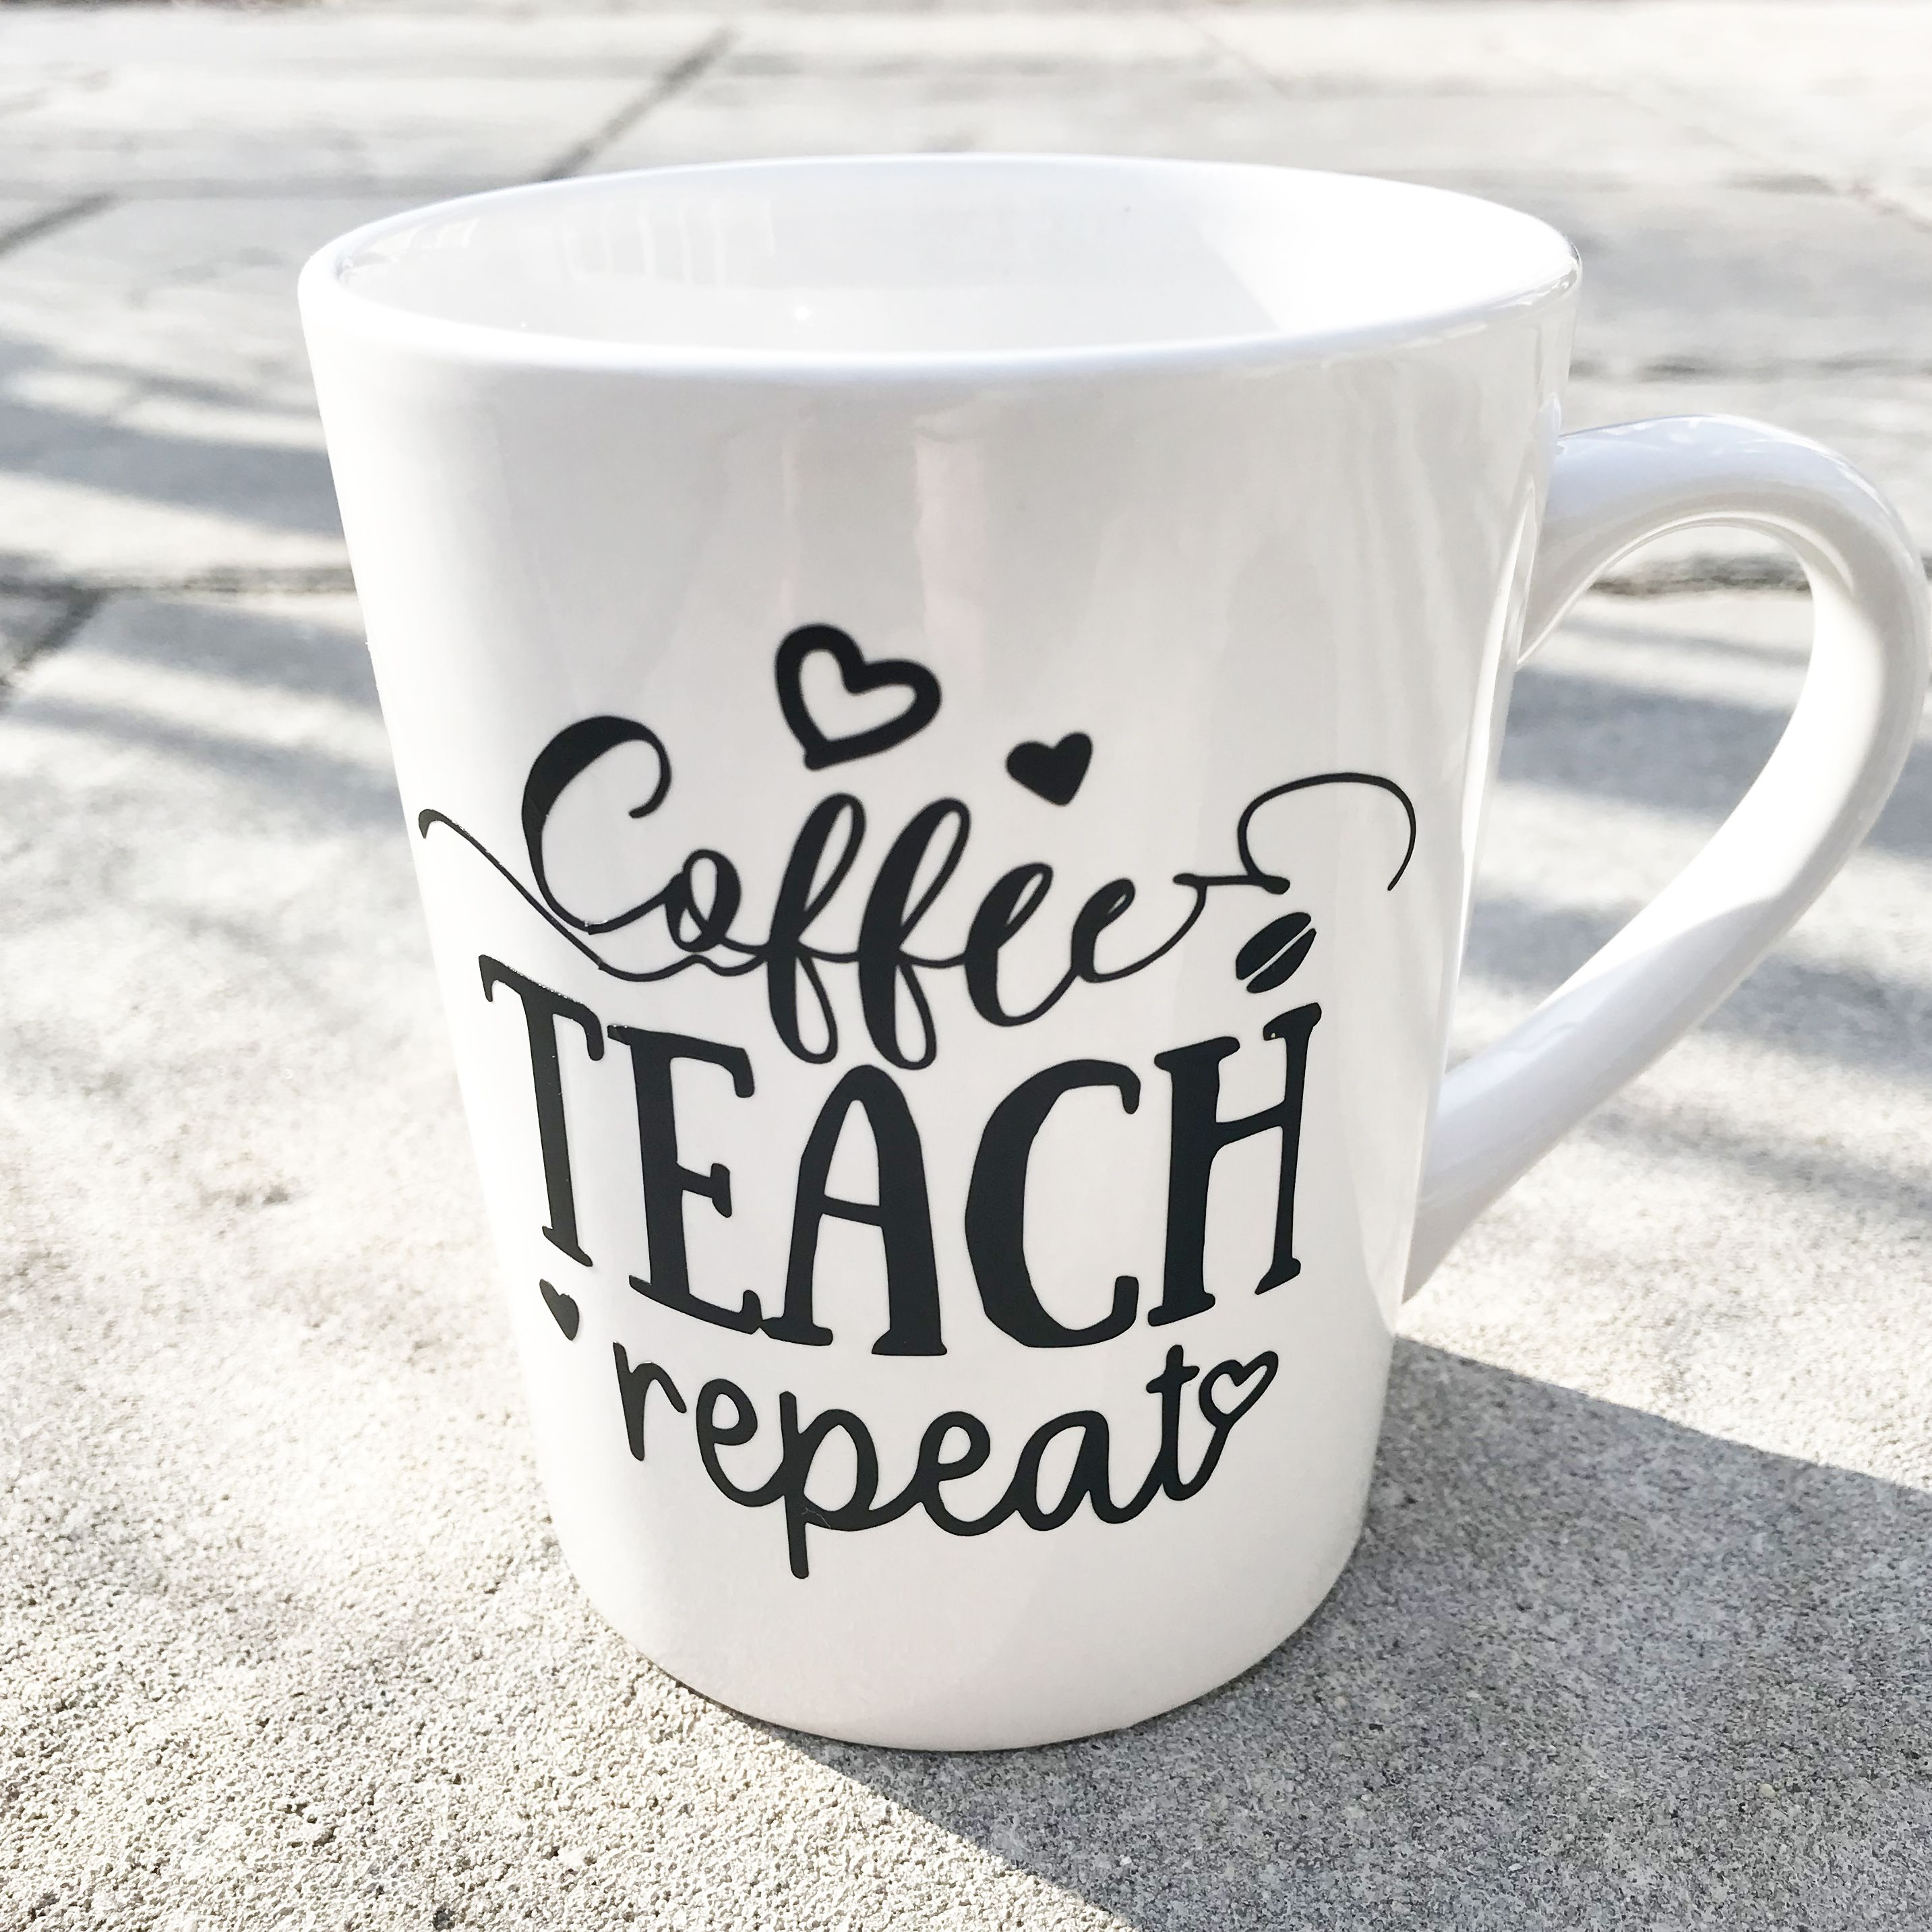 Teacher Coffee Mugs Coffee Mug Quotes Coffee Teach Repeat Coffee Mug Quotes Mugs Coffee Cup Quotes